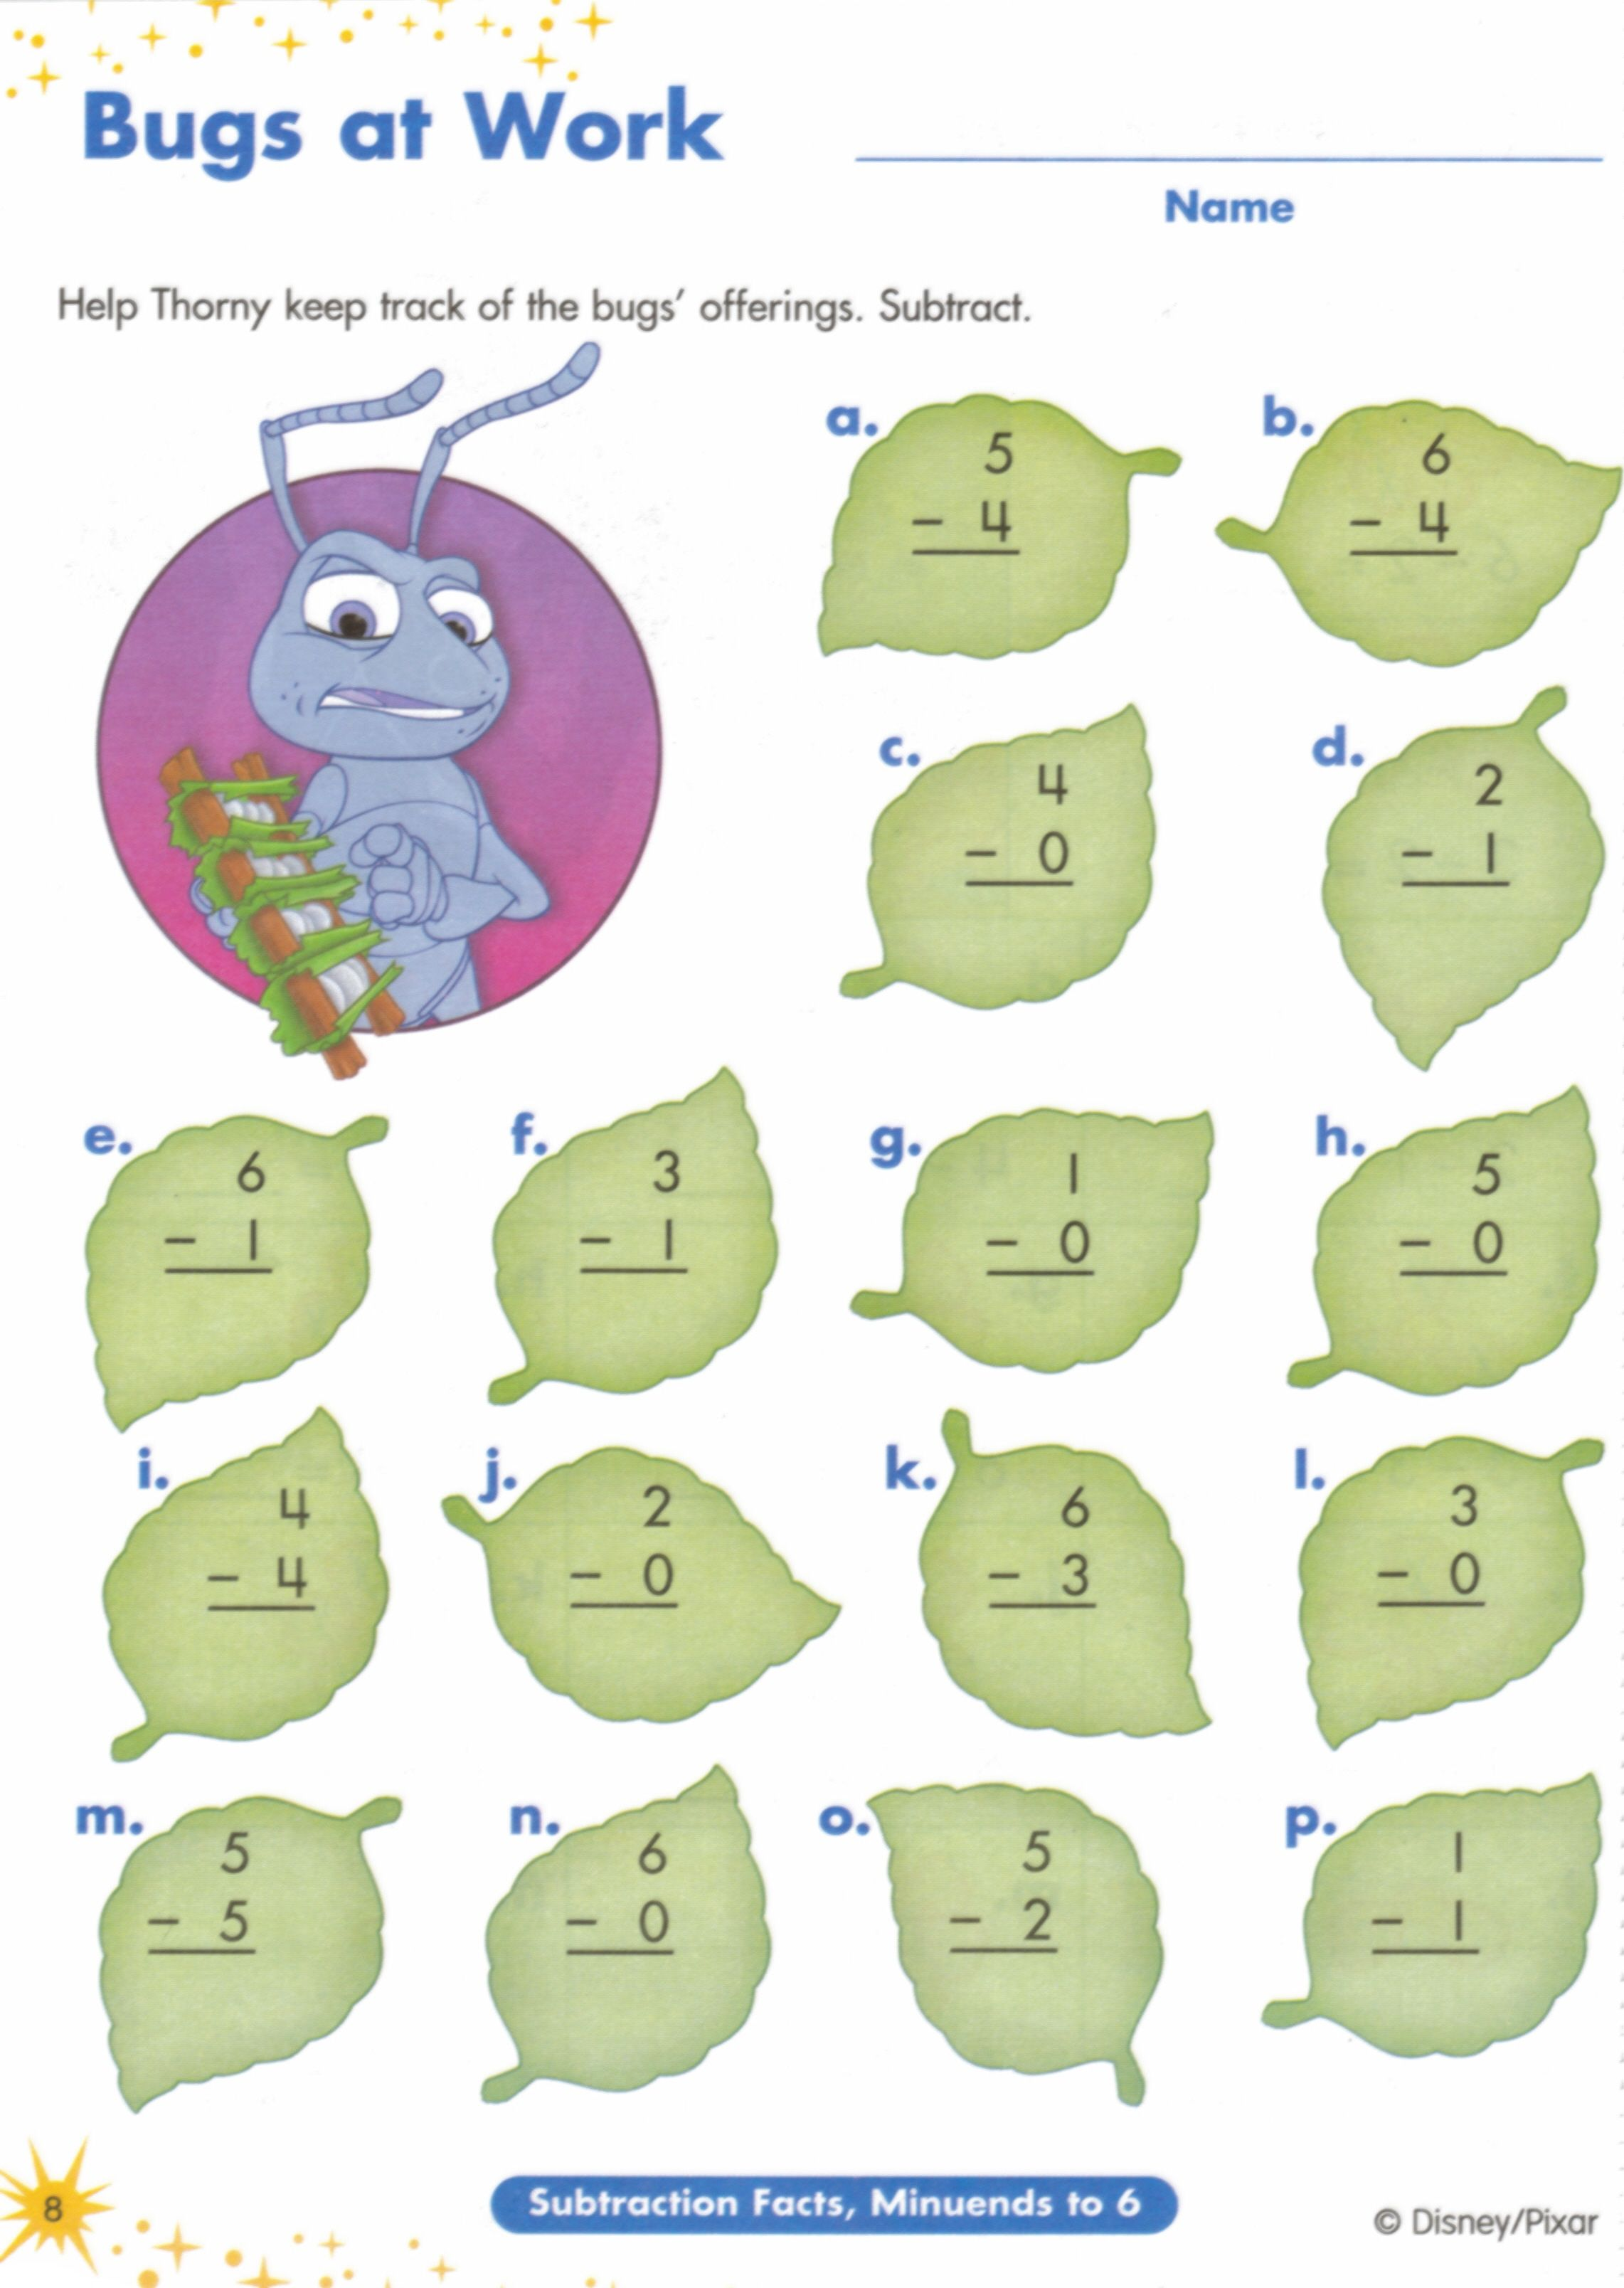 Weirdmailus  Surprising  Images About Worksheets On Pinterest  Fun Facts For Kids  With Lovely  Images About Worksheets On Pinterest  Fun Facts For Kids Earth Day Worksheets And Jungles With Adorable Animal Habitat Worksheets Also Writing And Naming Binary Compounds Worksheet In Addition Rosa Parks Worksheets And Music Math Worksheets As Well As Reading Worksheets Nd Grade Additionally Th Grade Volume Worksheets From Pinterestcom With Weirdmailus  Lovely  Images About Worksheets On Pinterest  Fun Facts For Kids  With Adorable  Images About Worksheets On Pinterest  Fun Facts For Kids Earth Day Worksheets And Jungles And Surprising Animal Habitat Worksheets Also Writing And Naming Binary Compounds Worksheet In Addition Rosa Parks Worksheets From Pinterestcom